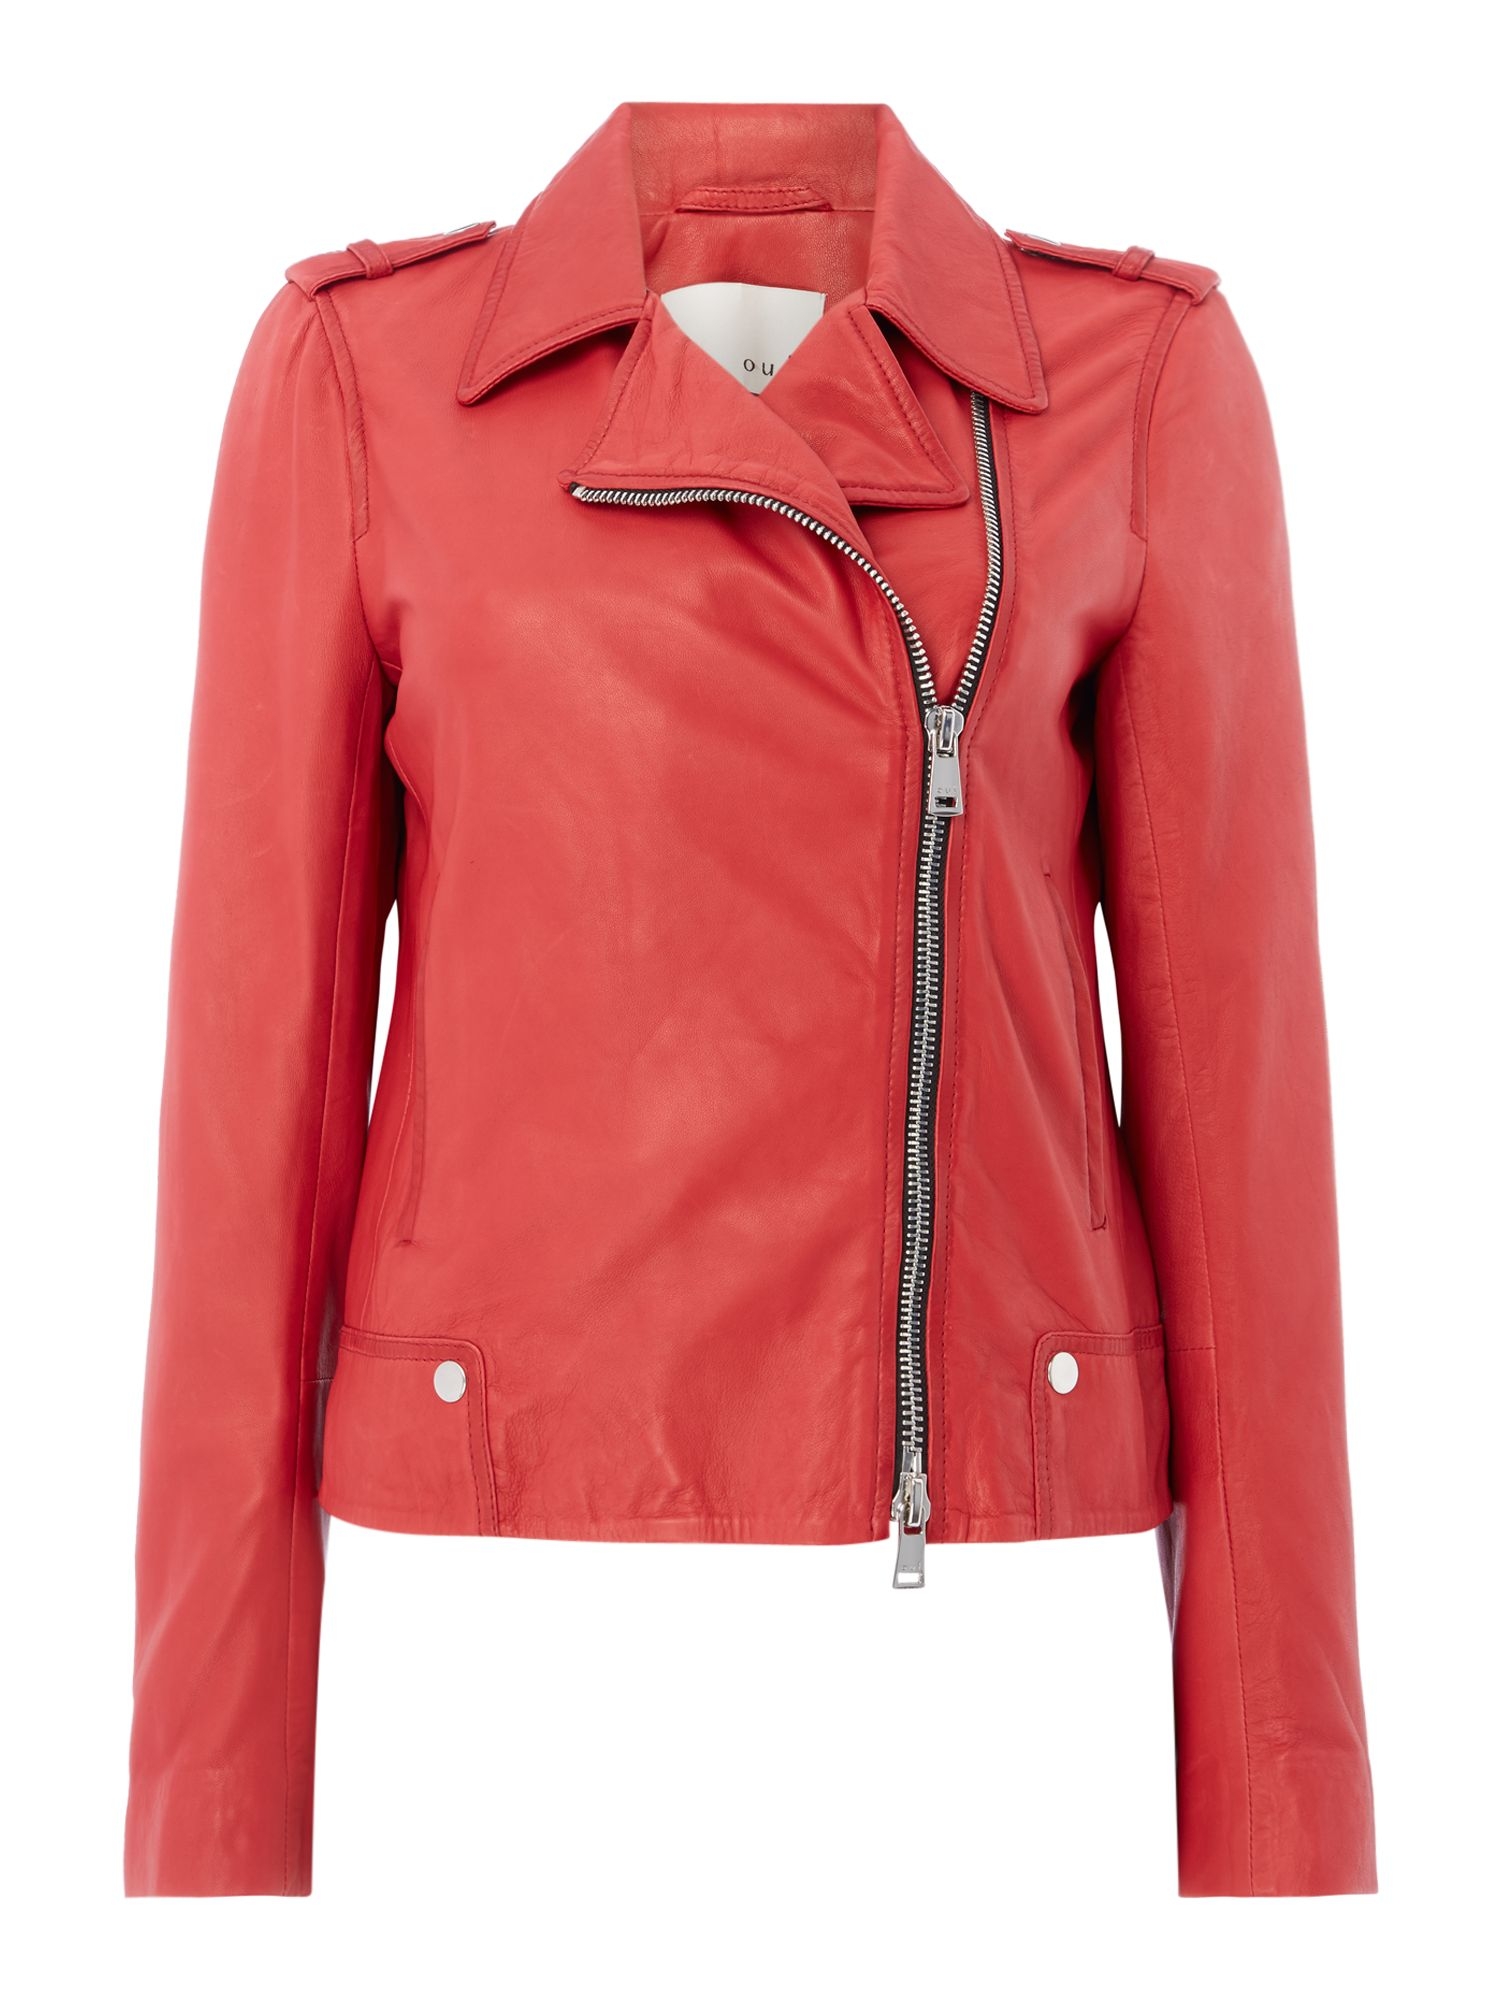 Oui Leather jacket, Scarlet